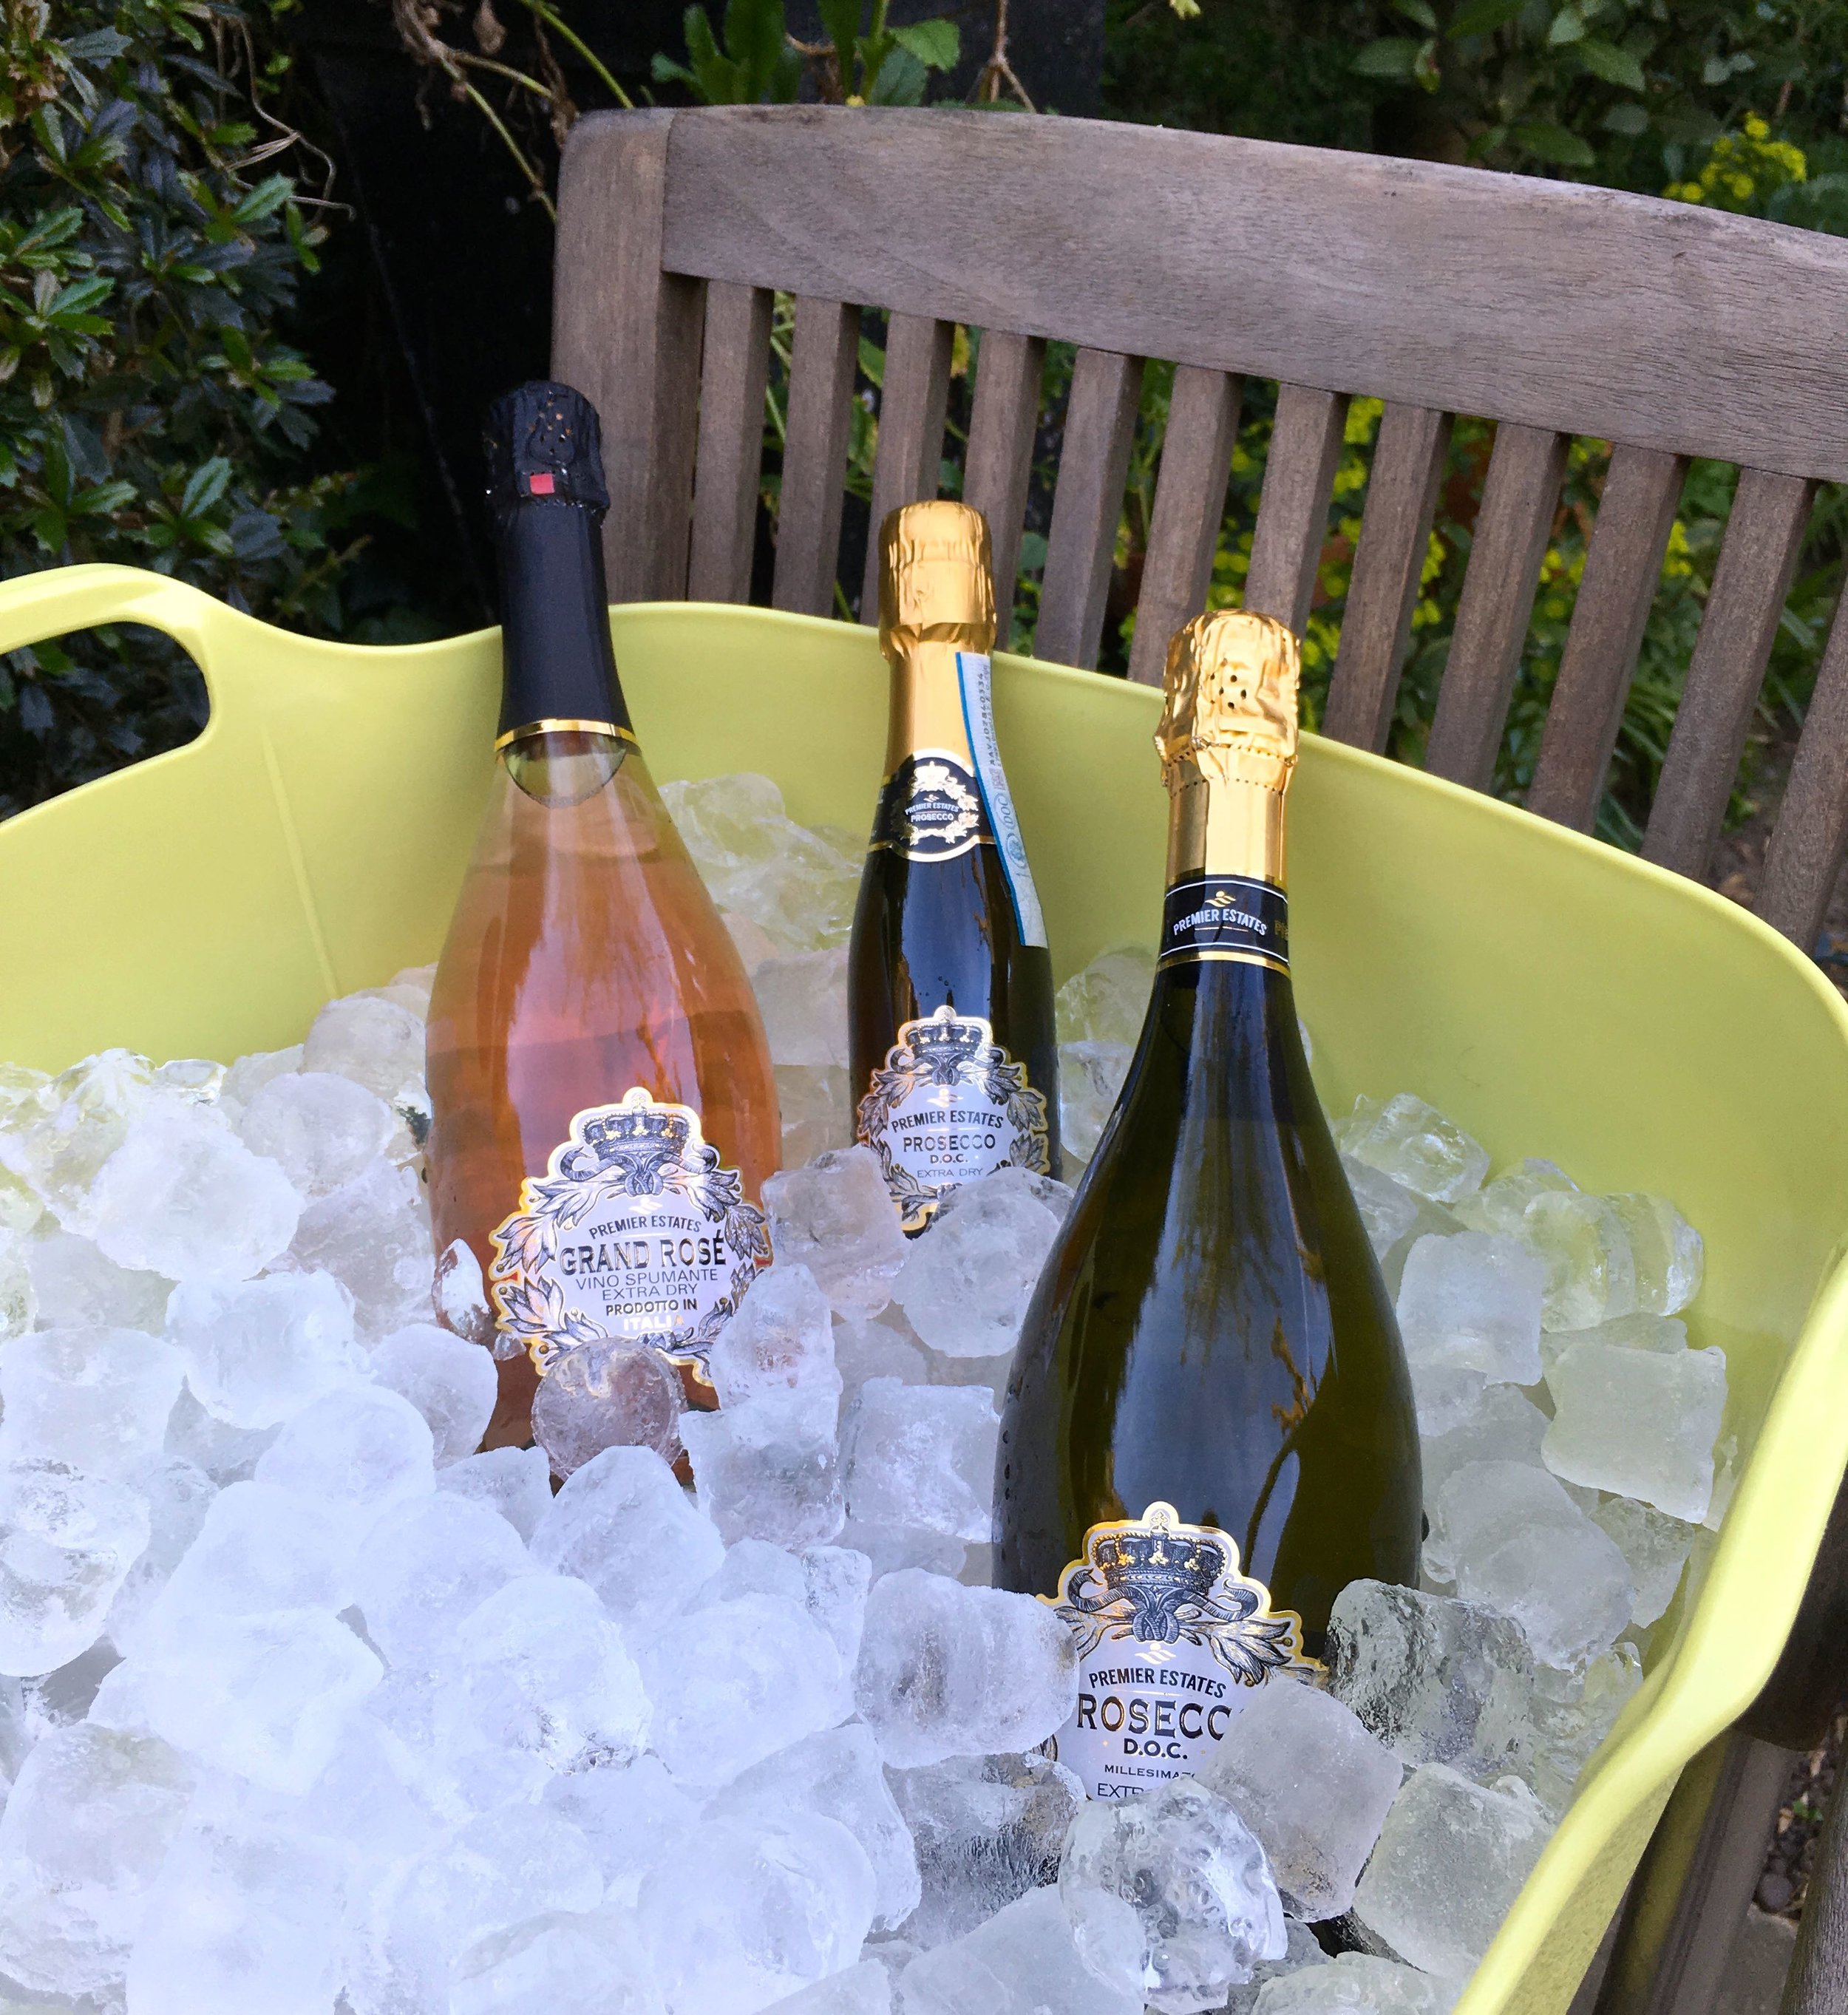 prosecco by premier estate wines on ice in my new flexi-square trug